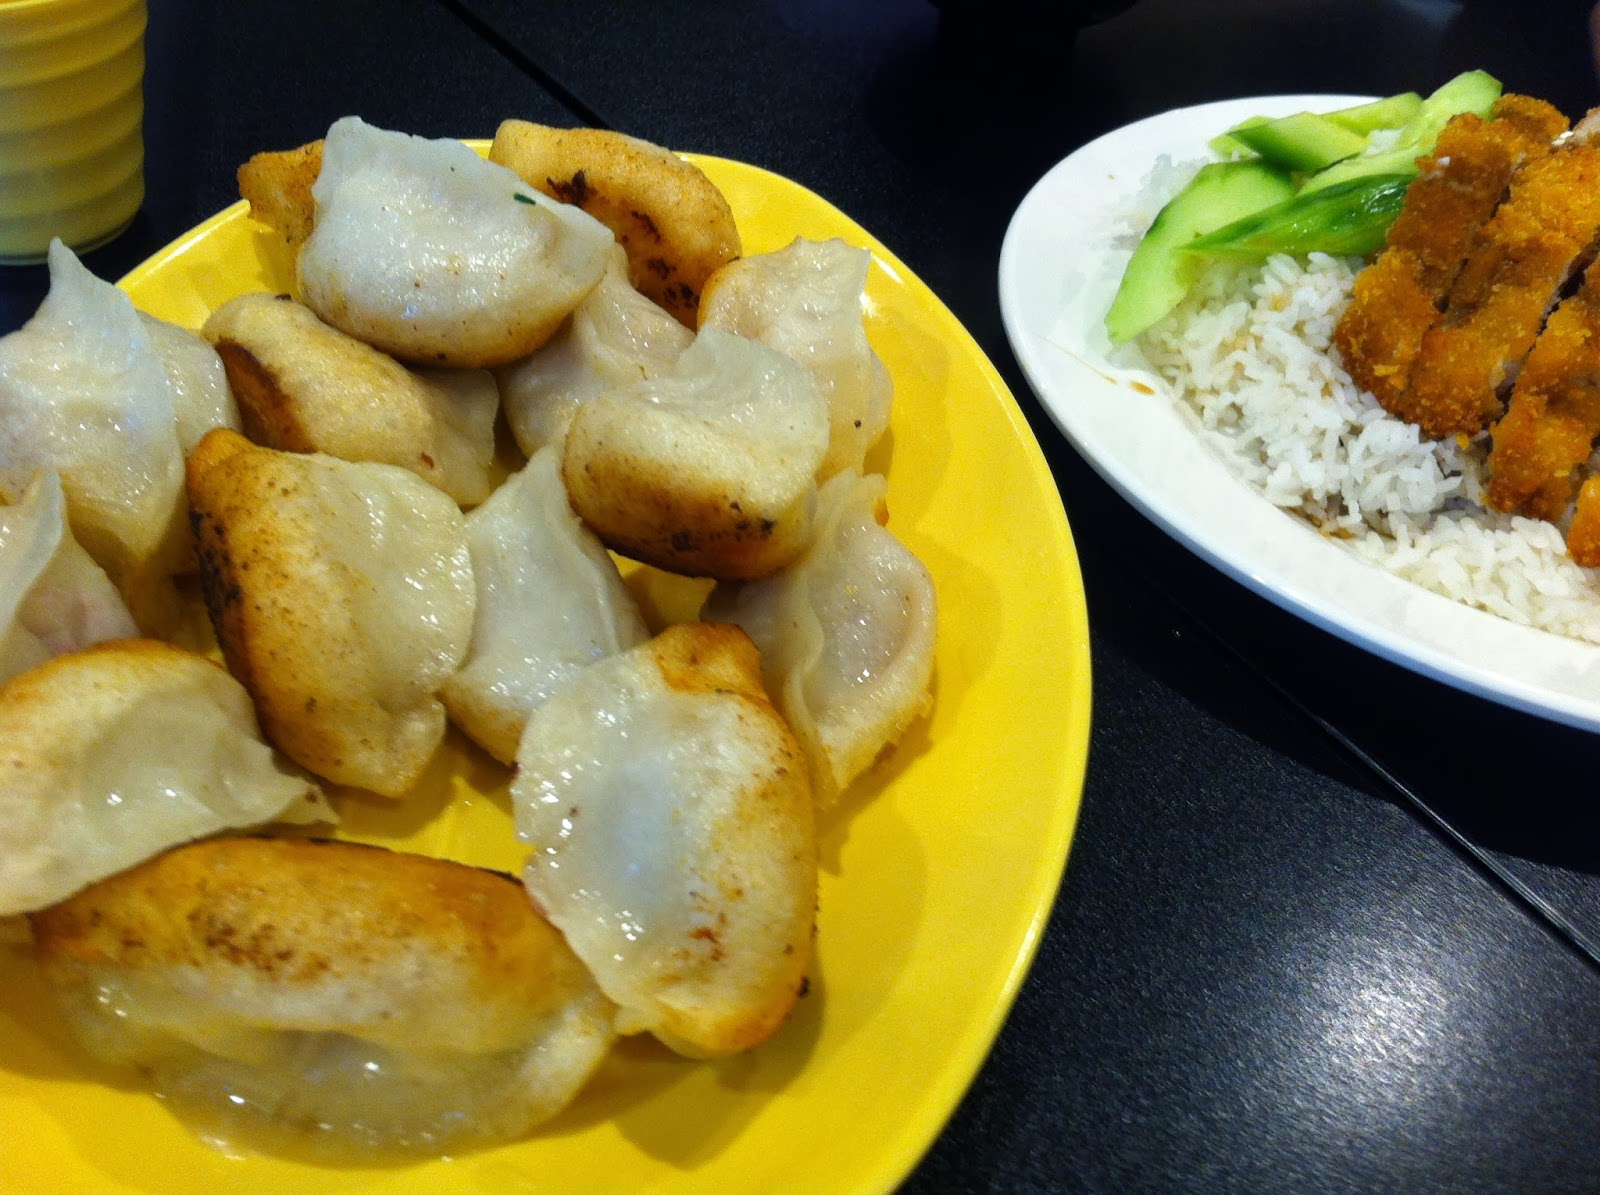 . And Ping's pan-fried pork dumplings are about as good as dumplings ...